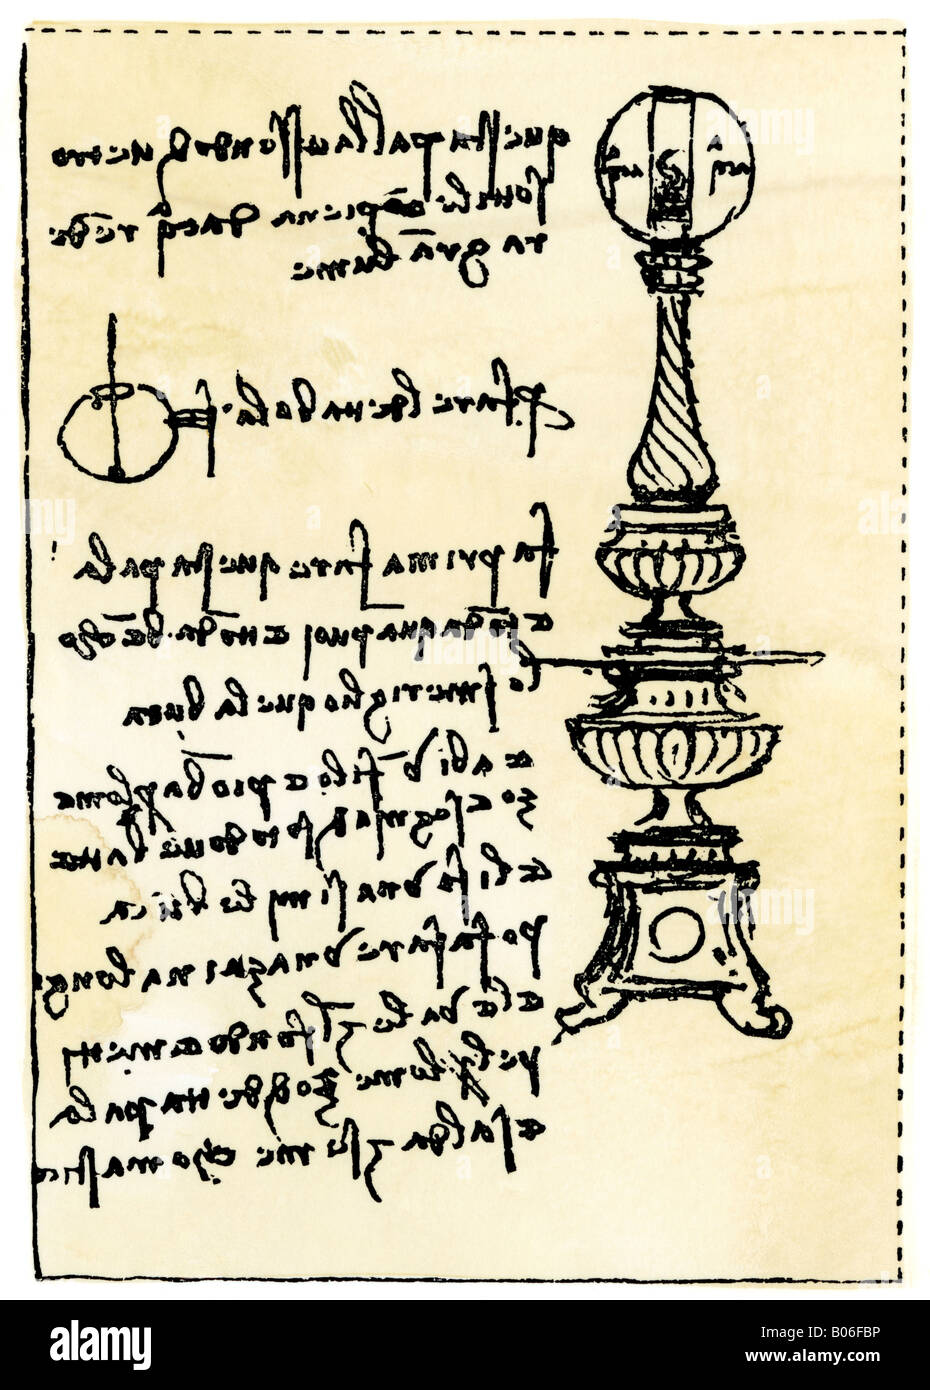 Leonardo da Vinci backward handwriting on his design for a lamp using a globe filled with water. Woodcut with a - Stock Image